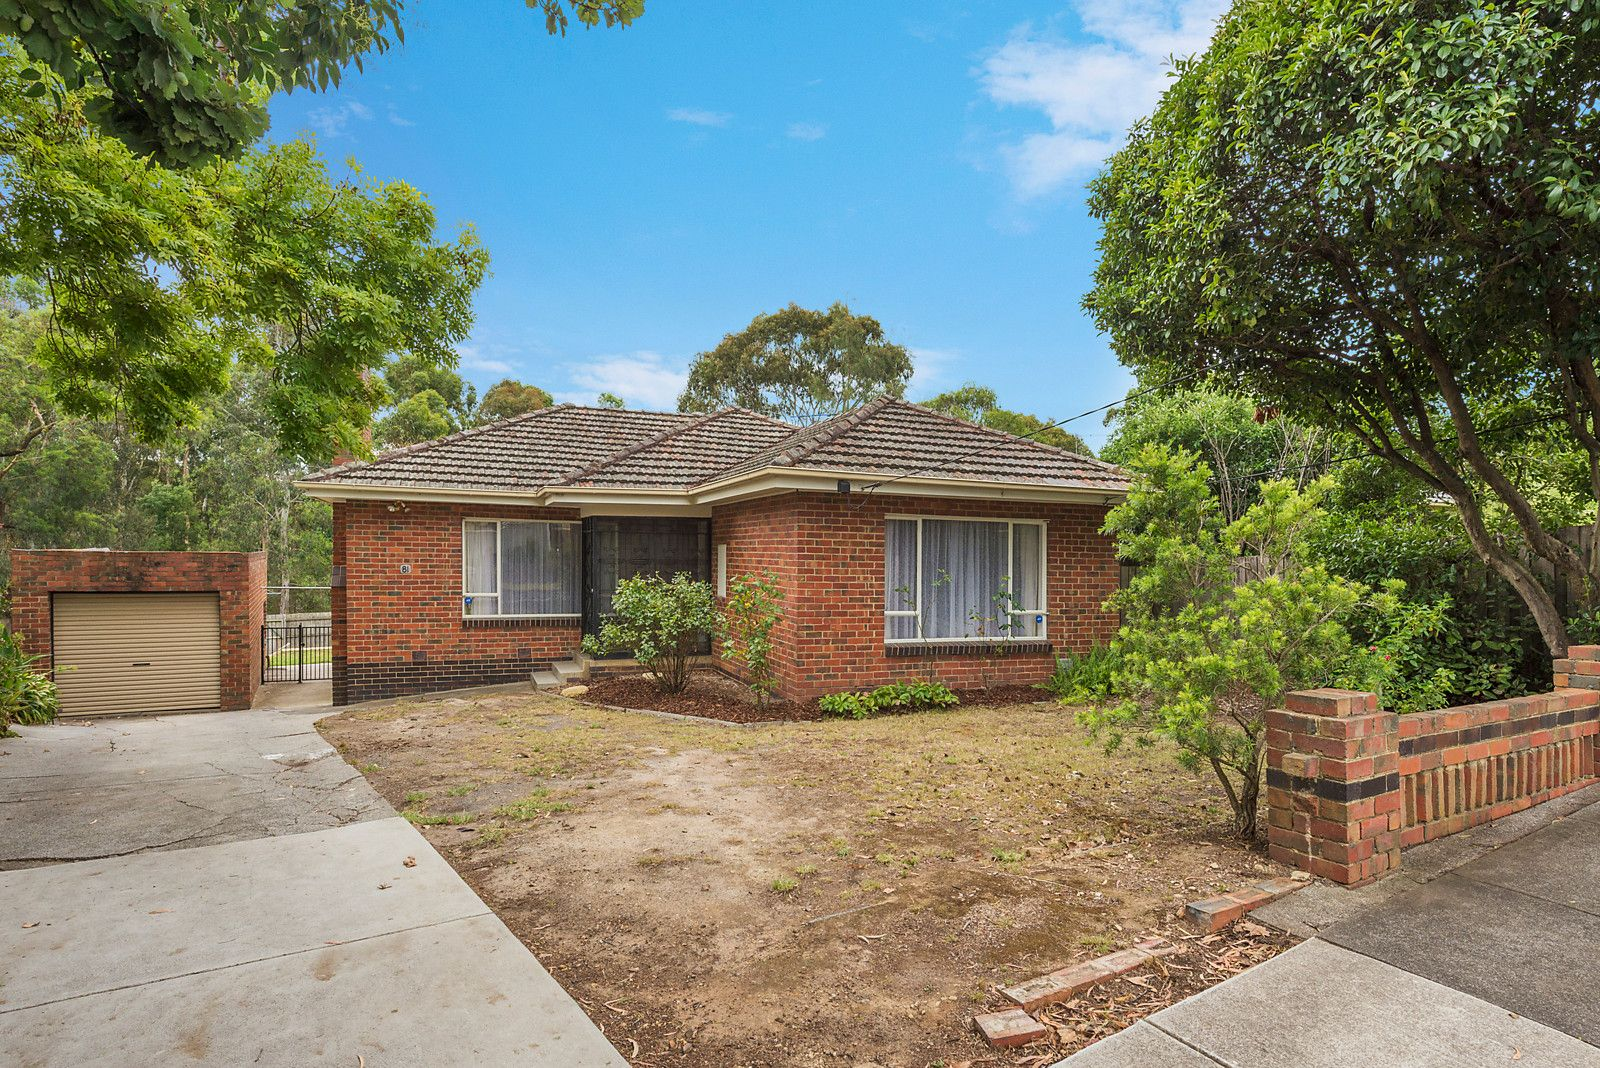 79 and/or 81 Peter Street, Box Hill North VIC 3129, Image 1